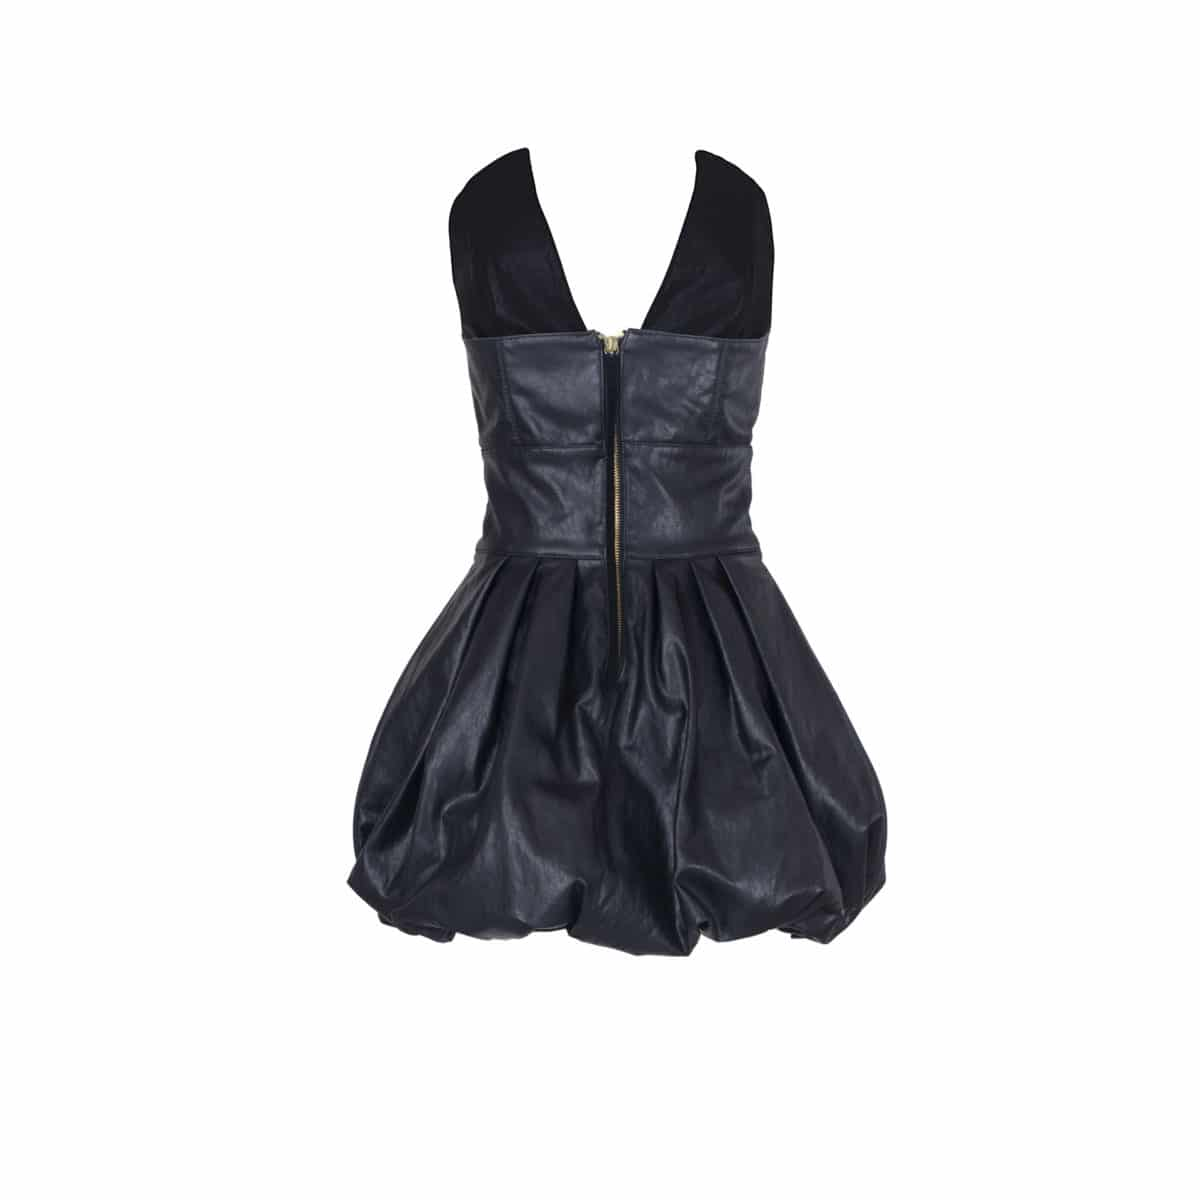 The Bow Leather Dress